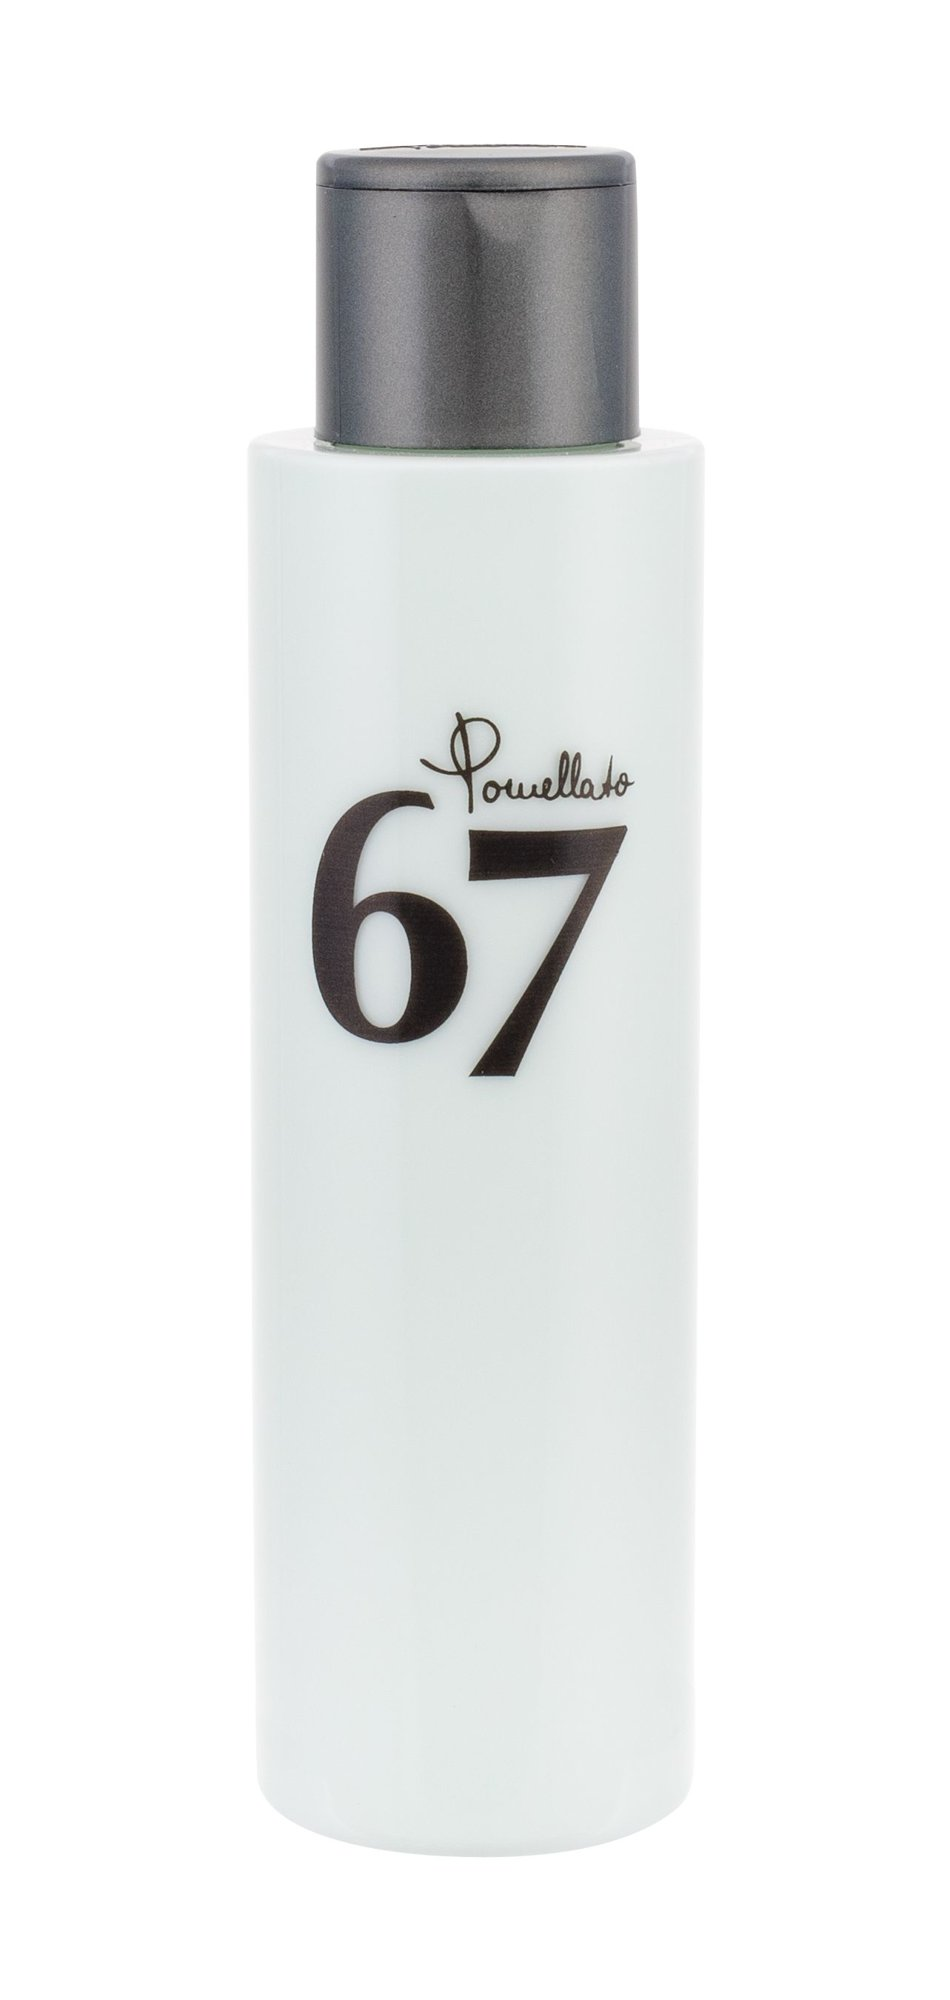 Pomellato 67 Artemisia Body Lotion 200ml